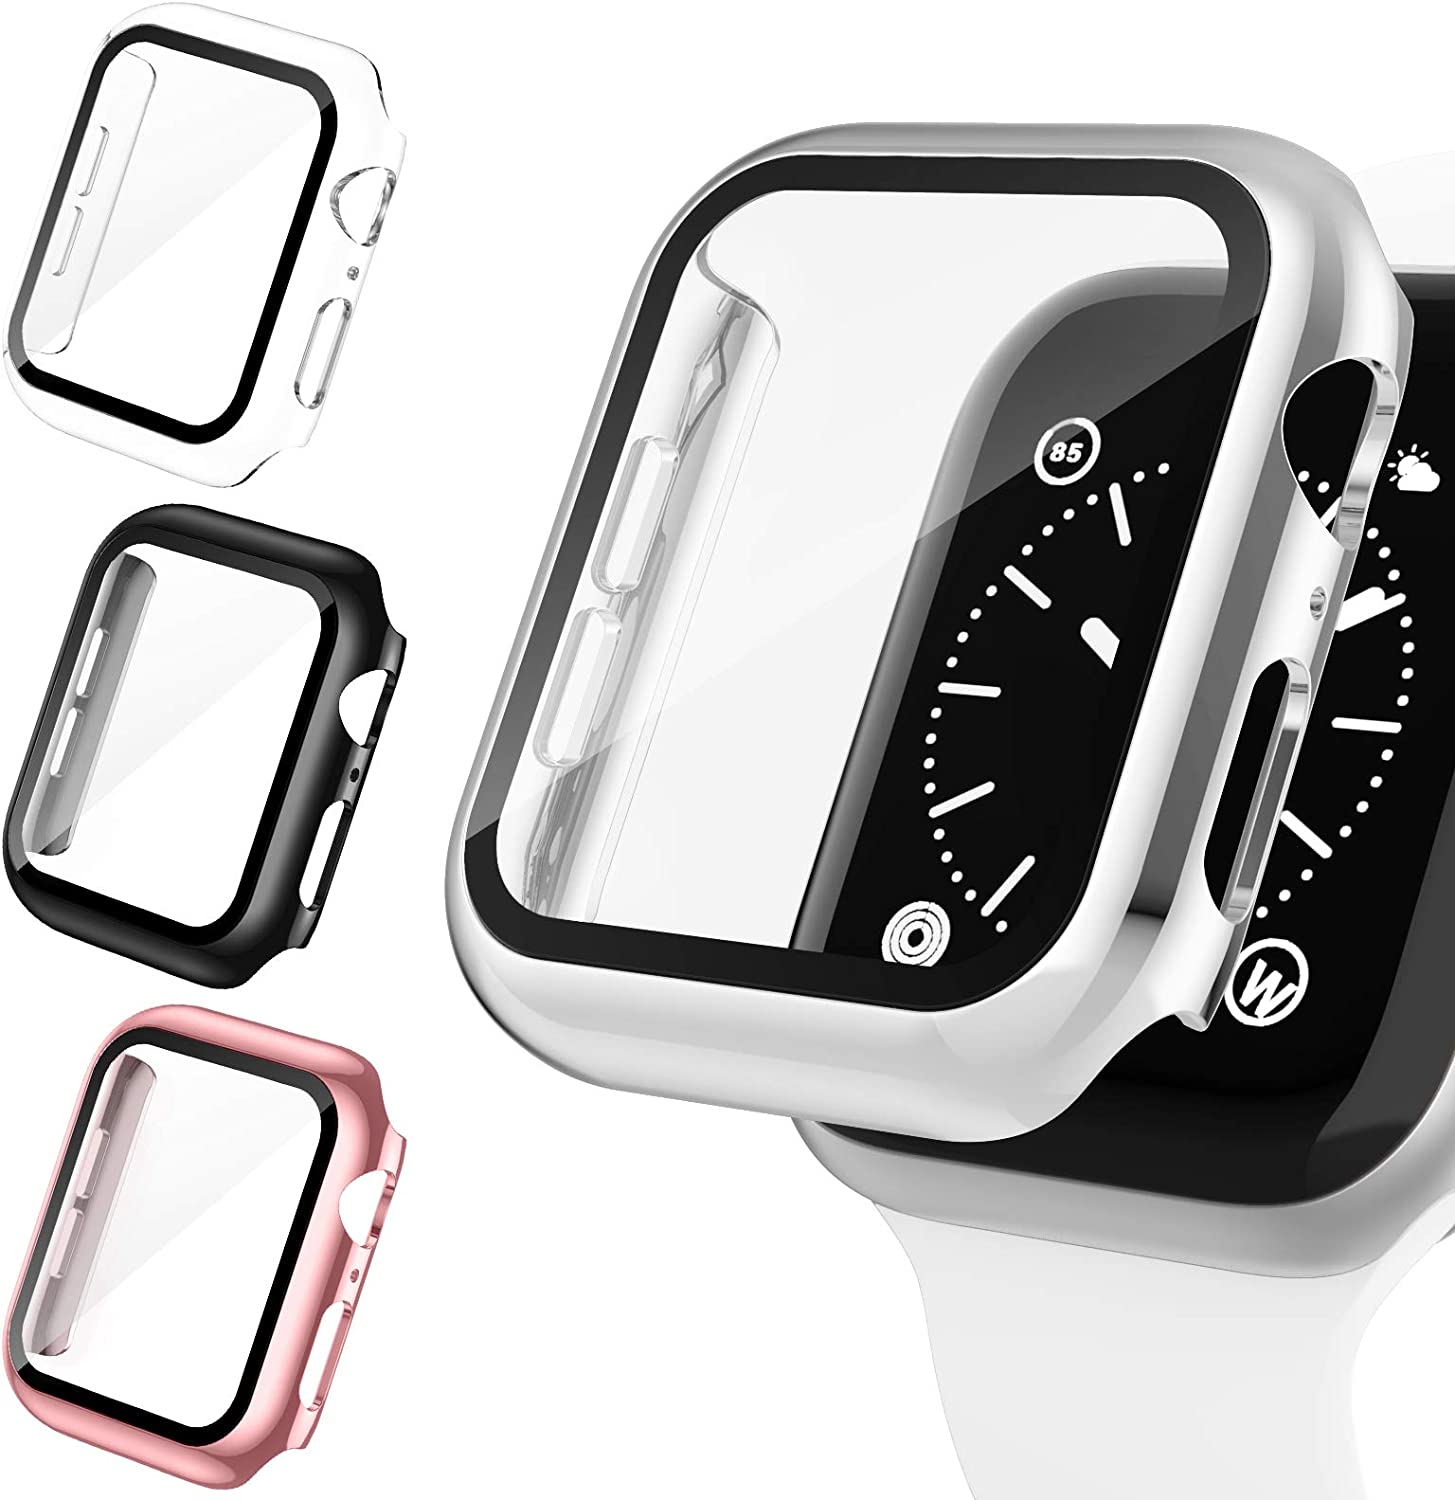 Goosehill 4 Pack Case for Apple Watch 38mm Built-in Tempered Glass Screen Protector, Slim Guard Bumper Full Coverage HD Ultra-Thin Cover Compatible with iWatch 38mm Series 3/2/1